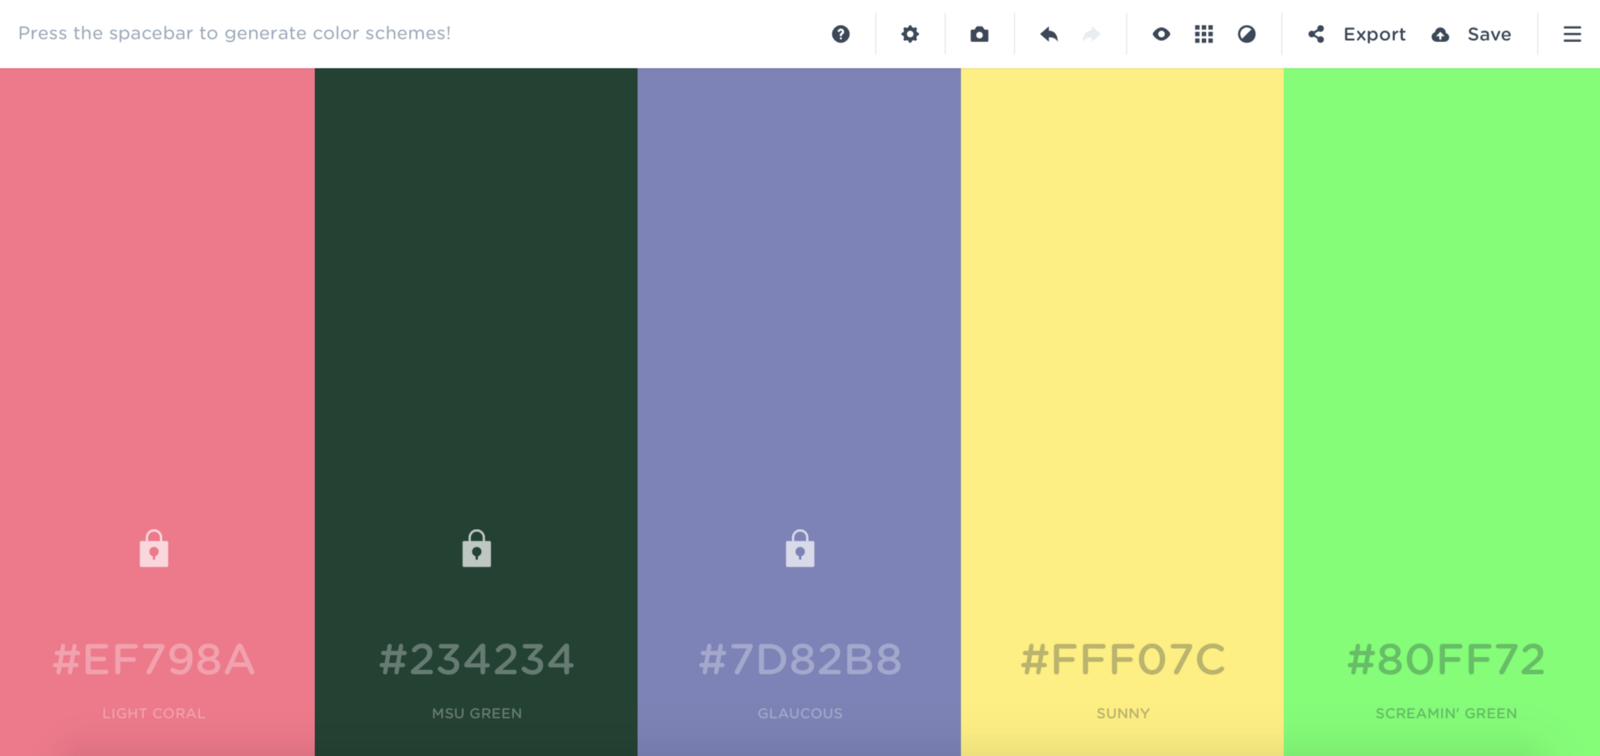 Color picker online upload image - Using This Tool It S Also Possible To Upload An Image And Make A Color Palette From It